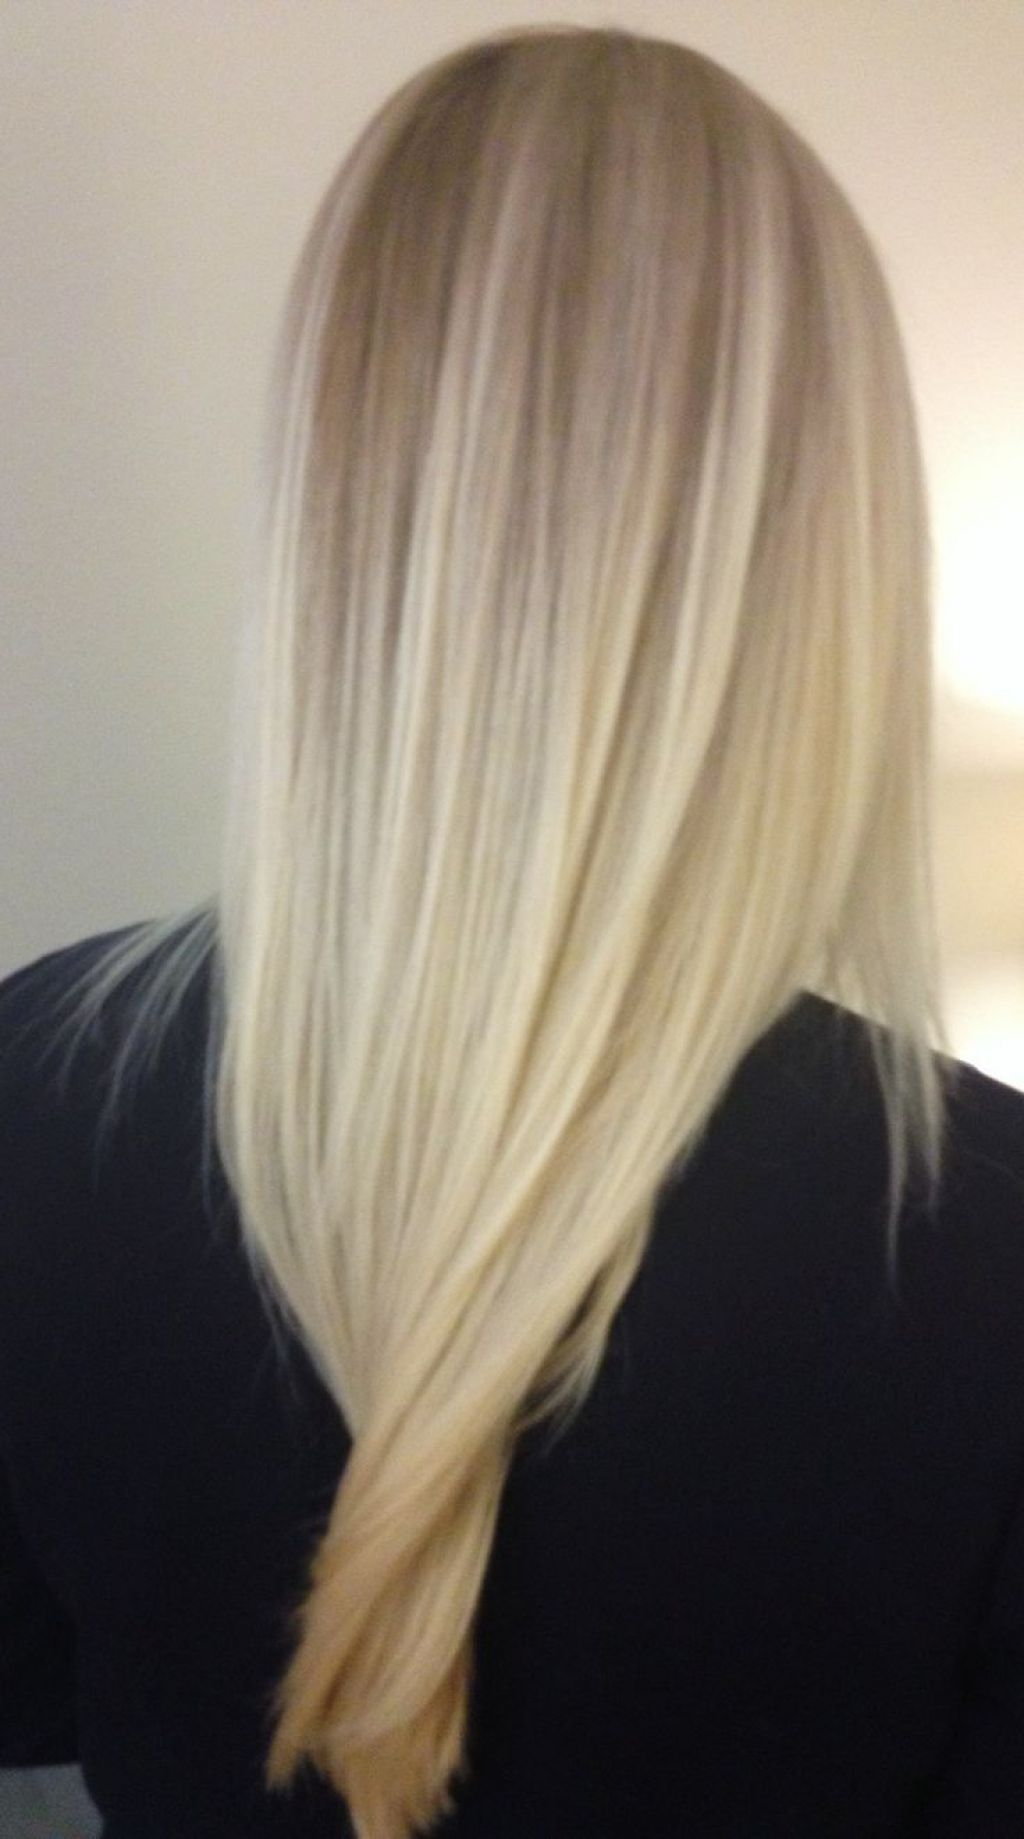 Frisuren fur langes blondes haar